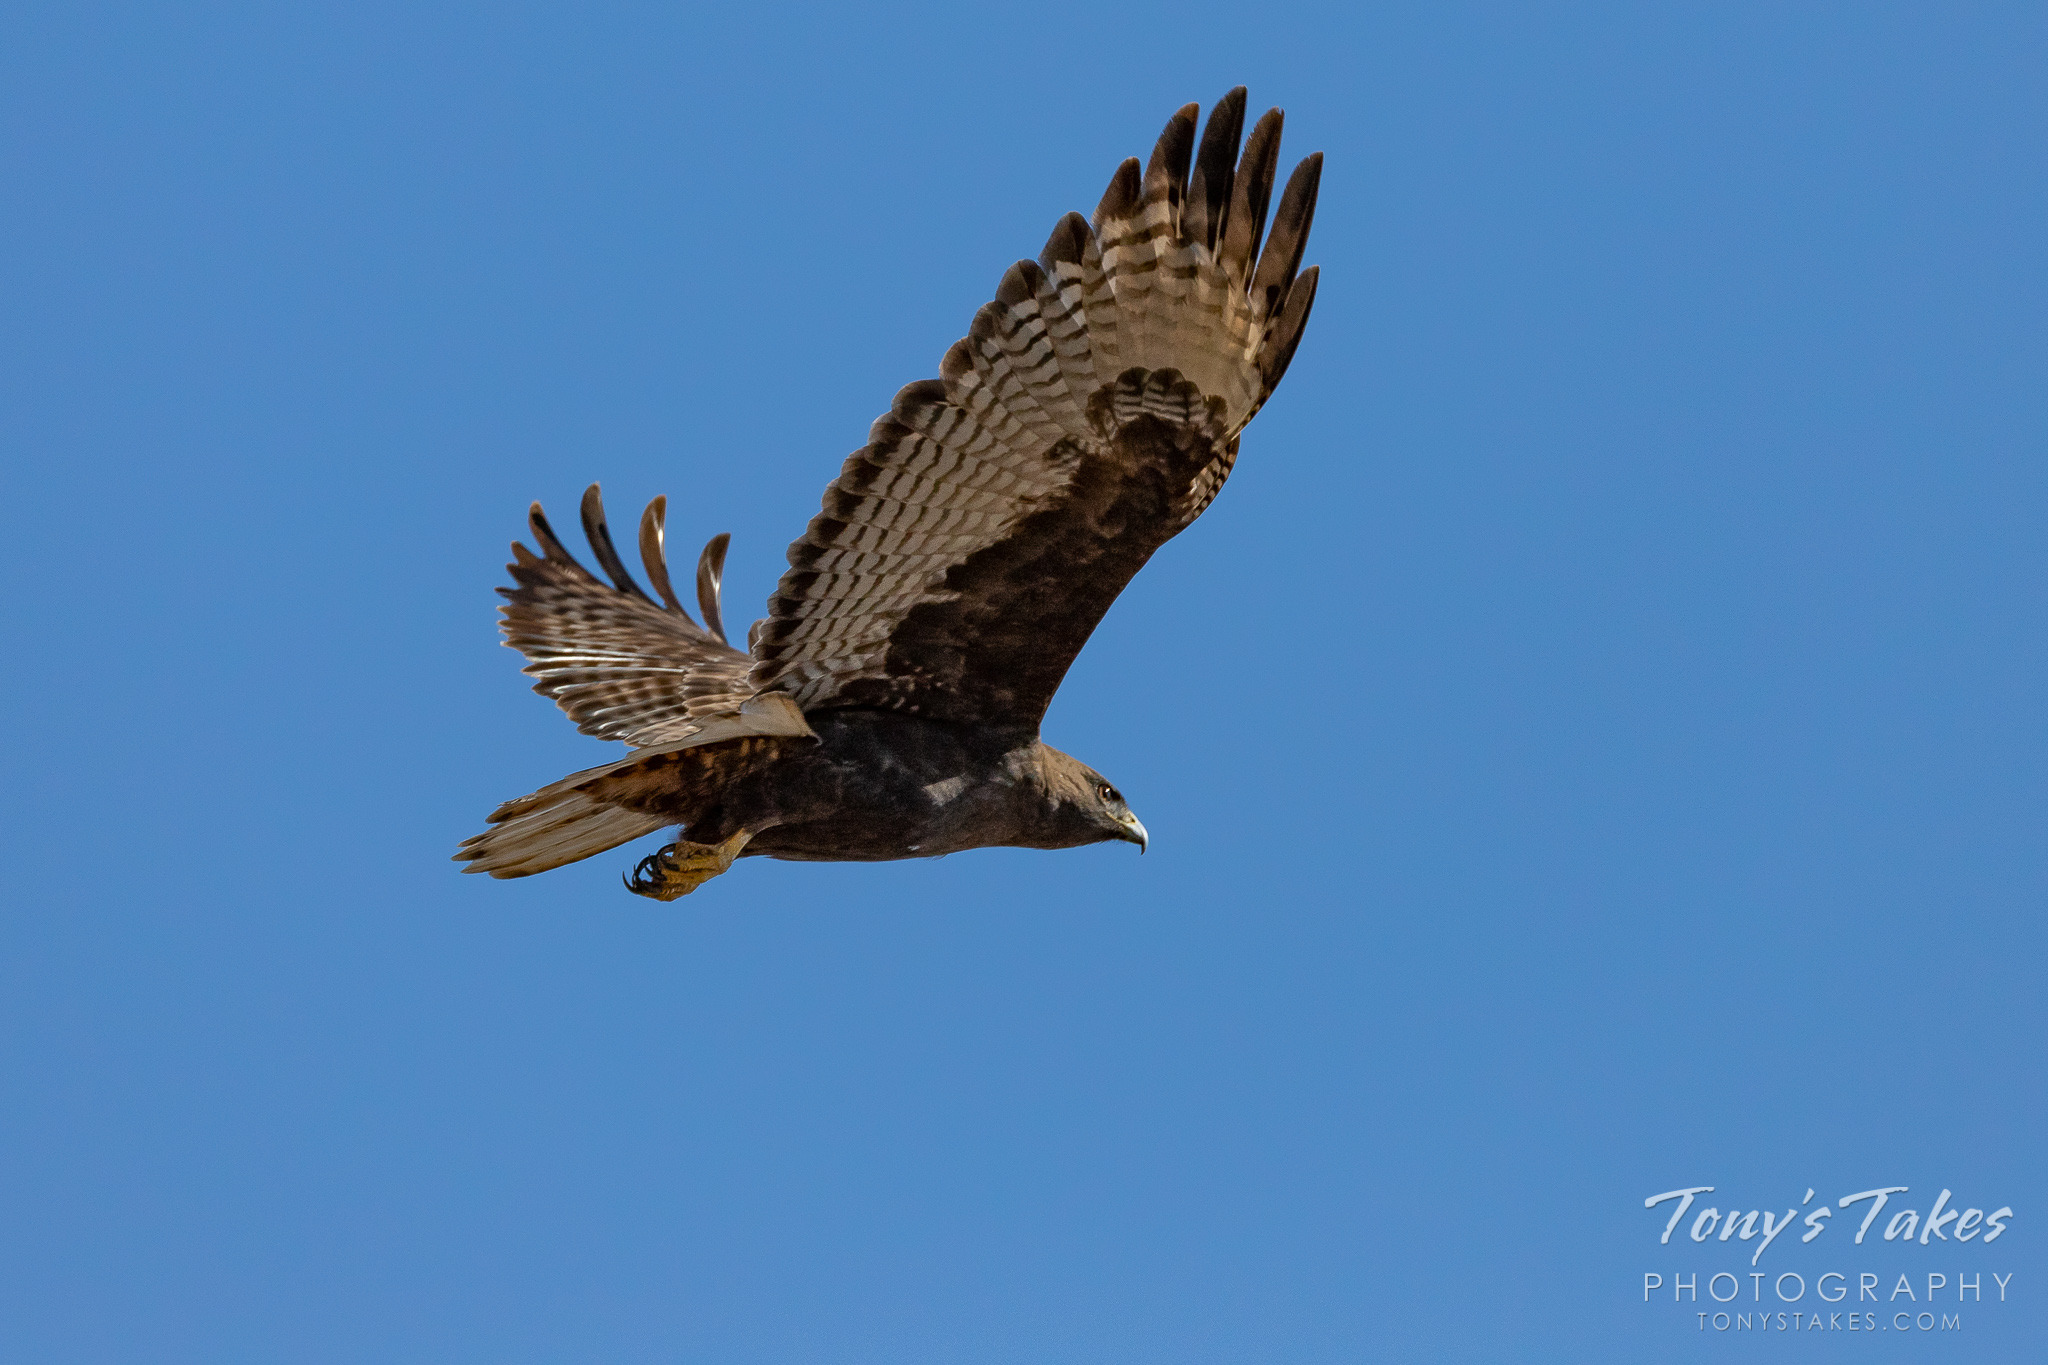 A Harlan's Red Tailed Hawk takes flight in Adams County, Colorado. (© Tony's Takes)